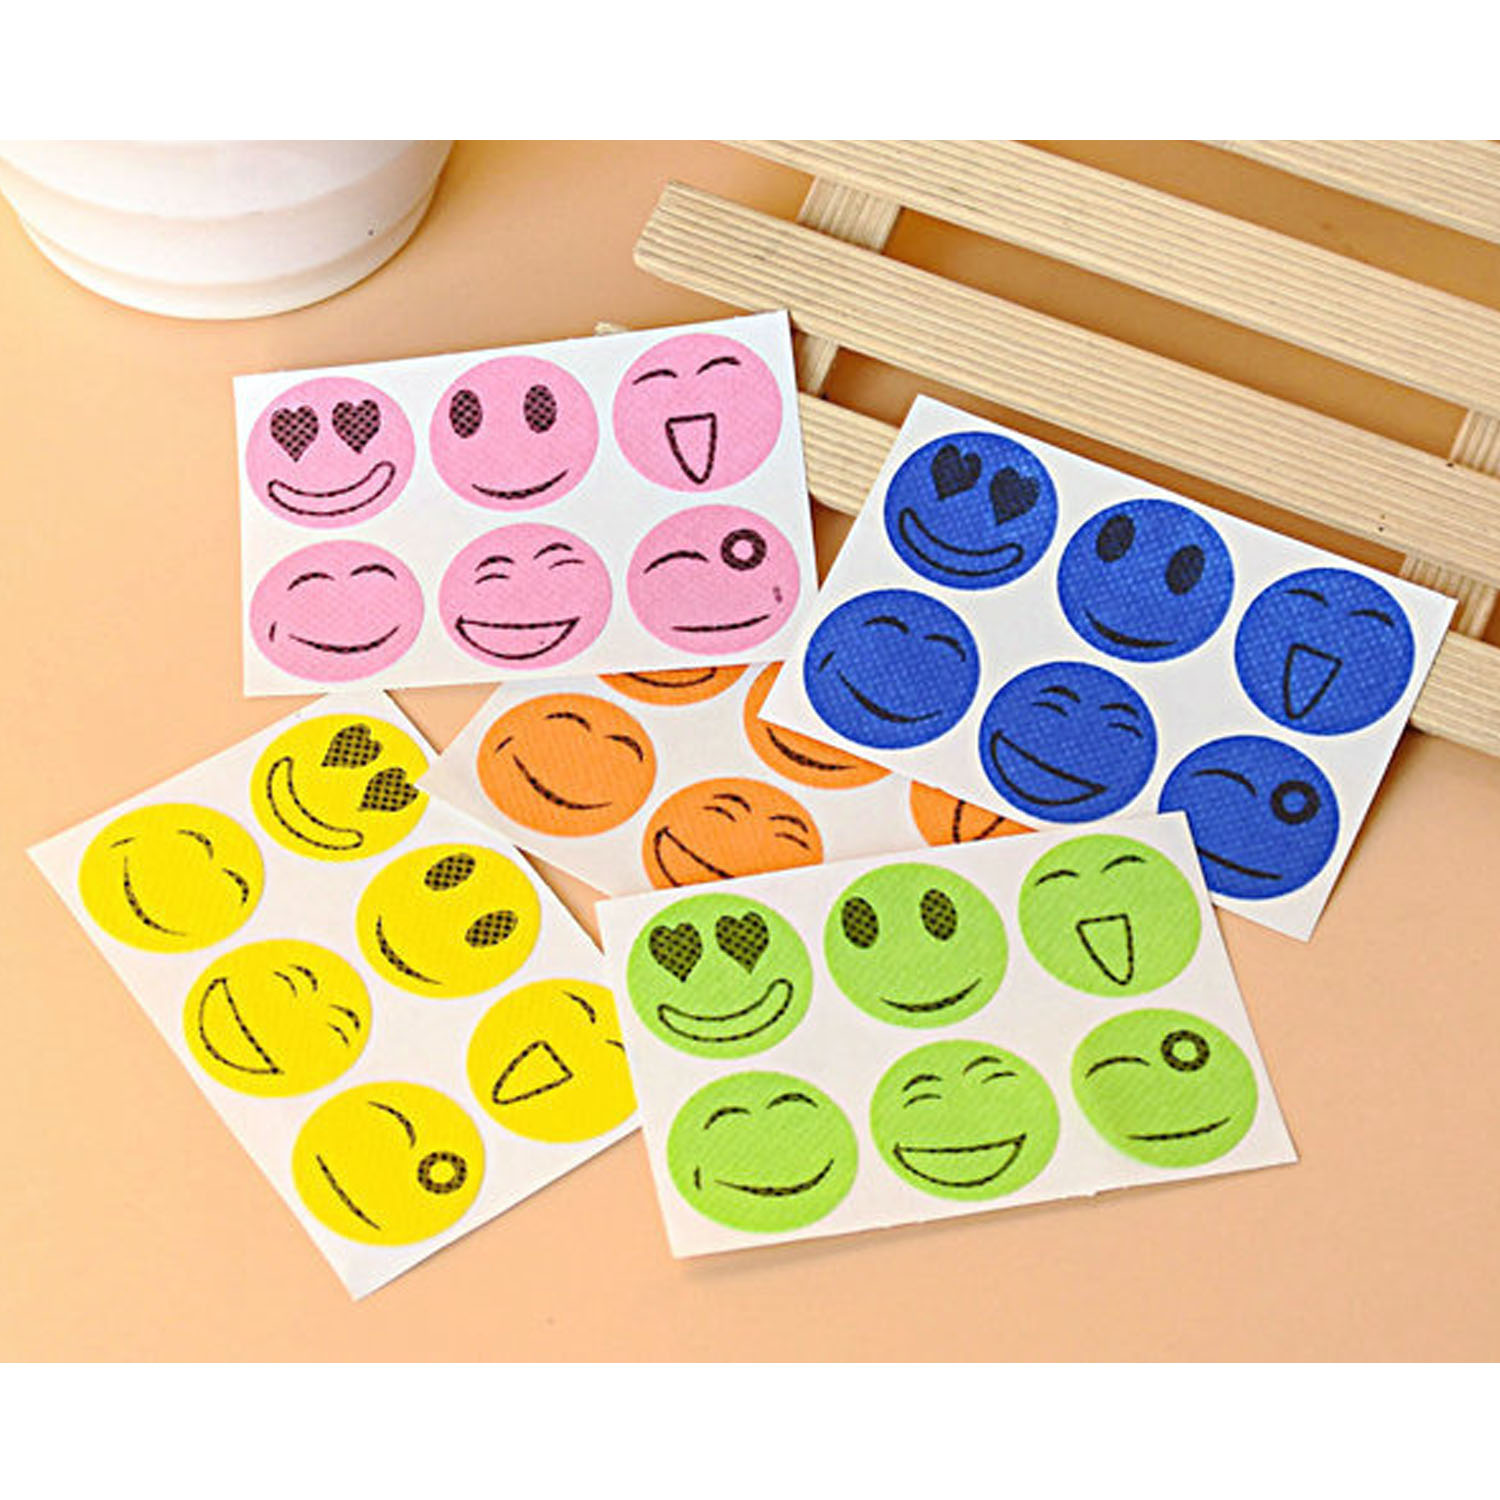 Behogar 60pcs Natural Mosquito Repellent Patches Stickers For Kids Adults Keeps Insects Bugs Far Away Outdoor Home Camping Use